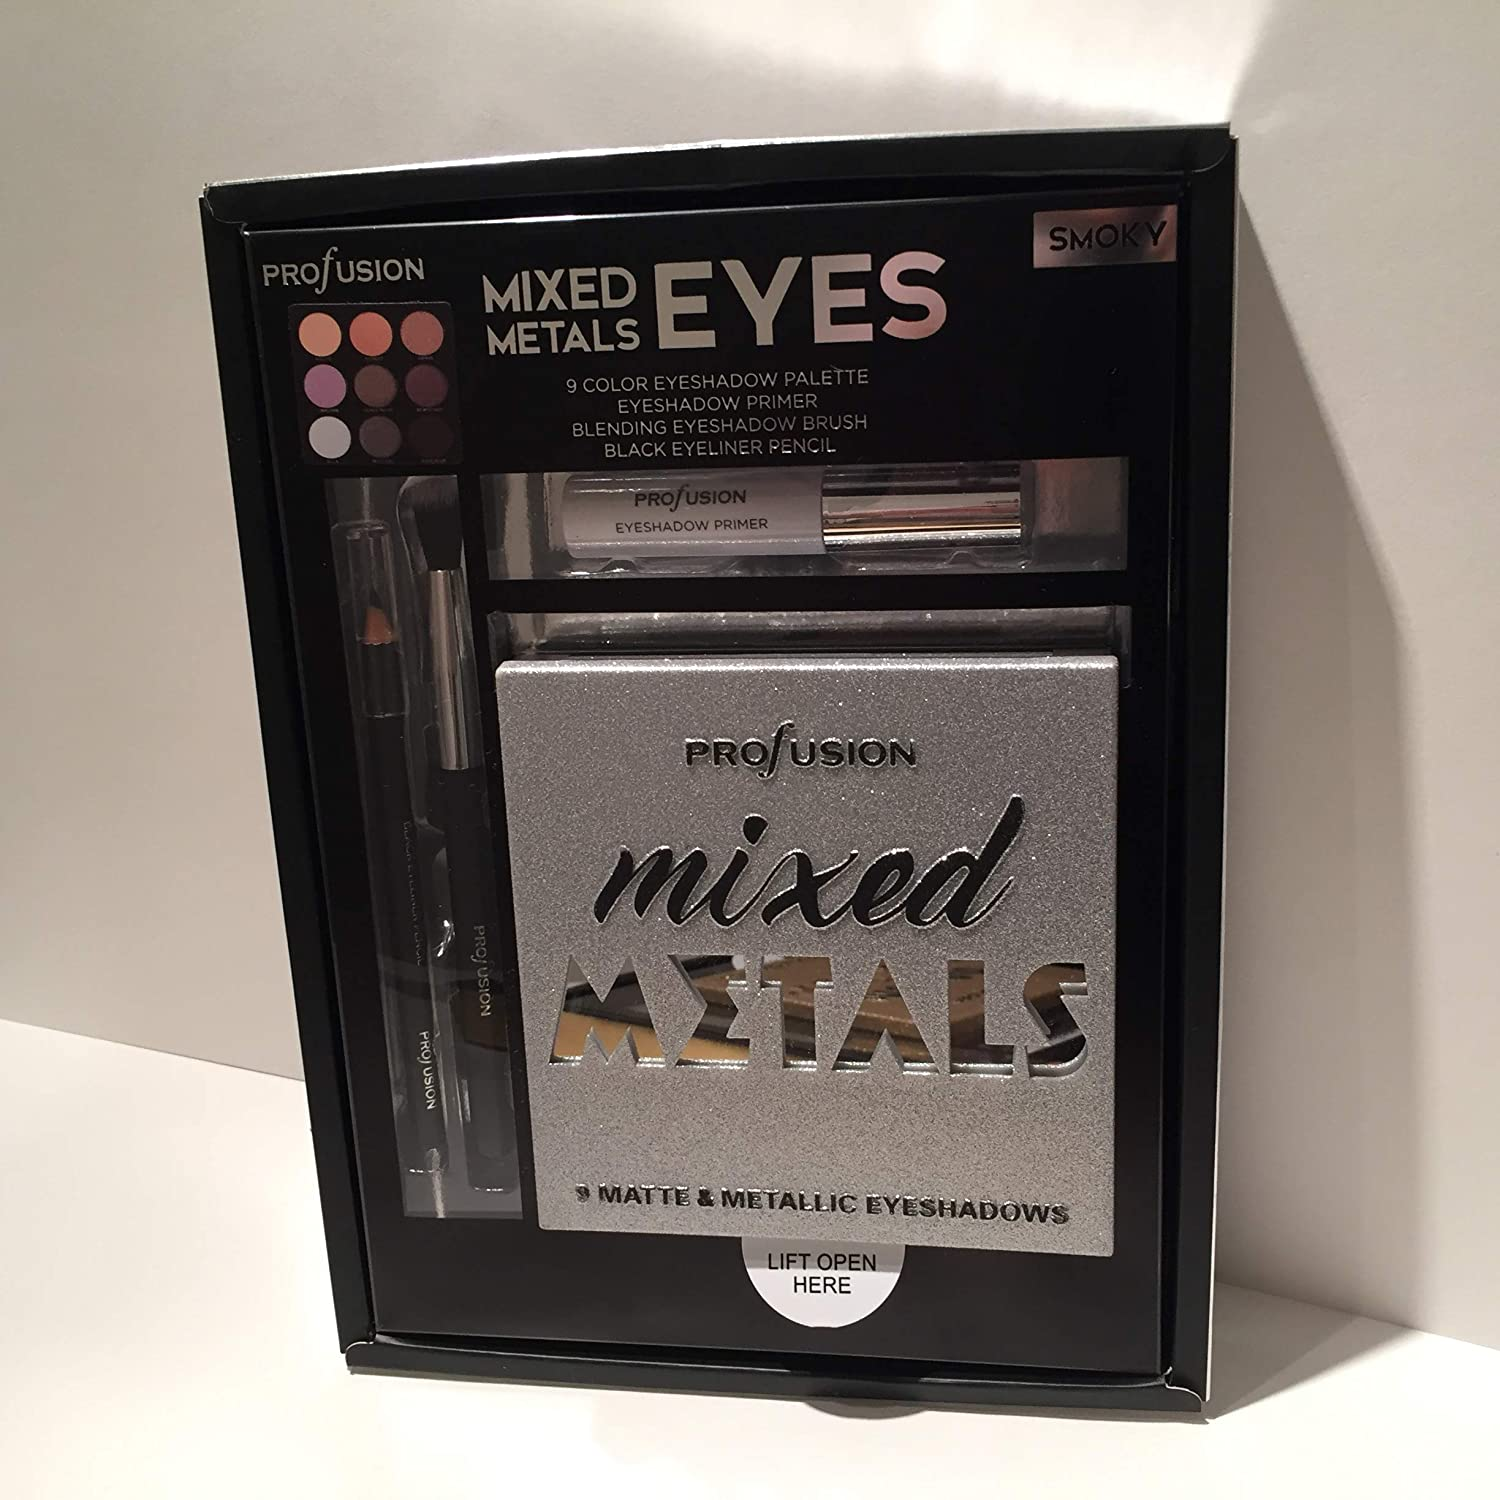 PROFUSION Mixed Metals & Eyes Palette - Smoky